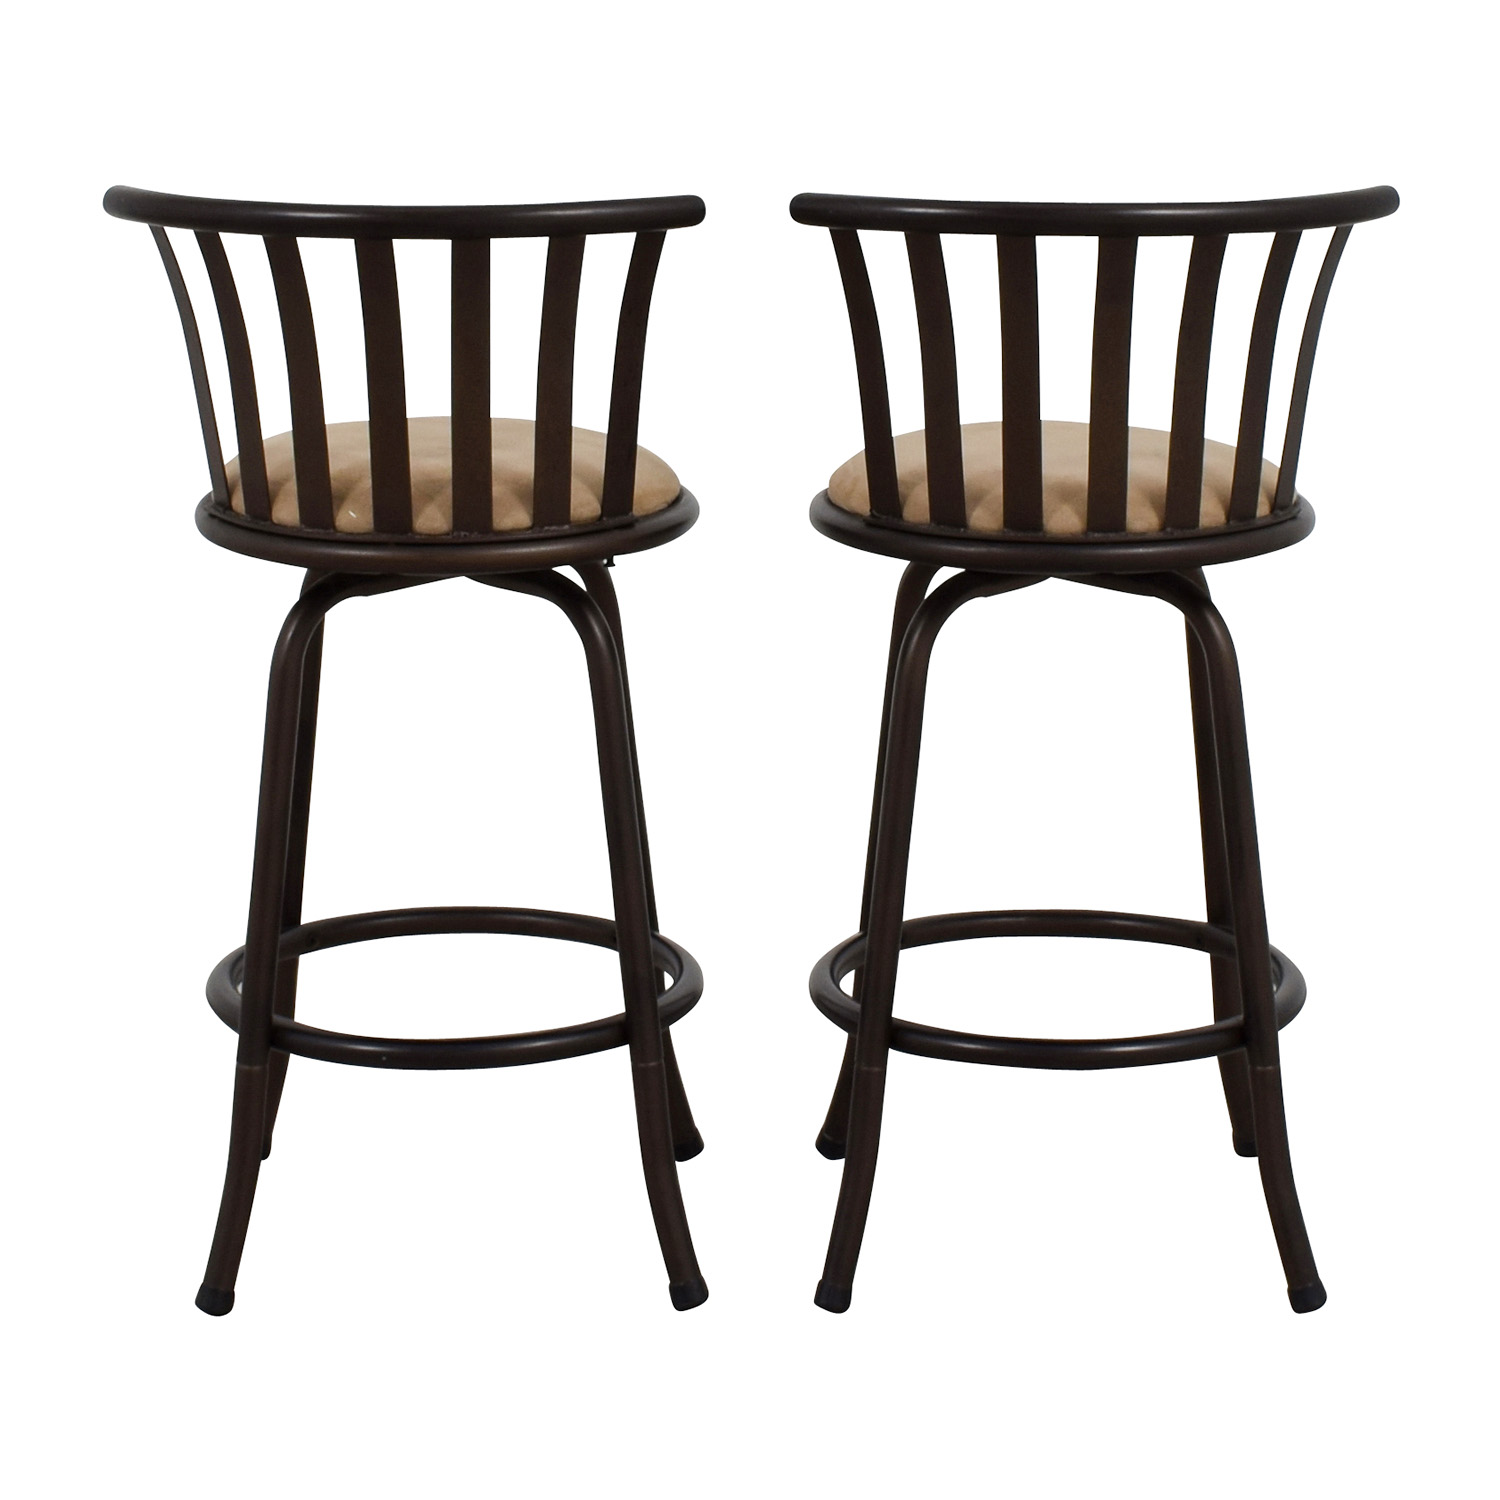 Awesome 63 Off Target Target Metal Barstools Chairs Spiritservingveterans Wood Chair Design Ideas Spiritservingveteransorg